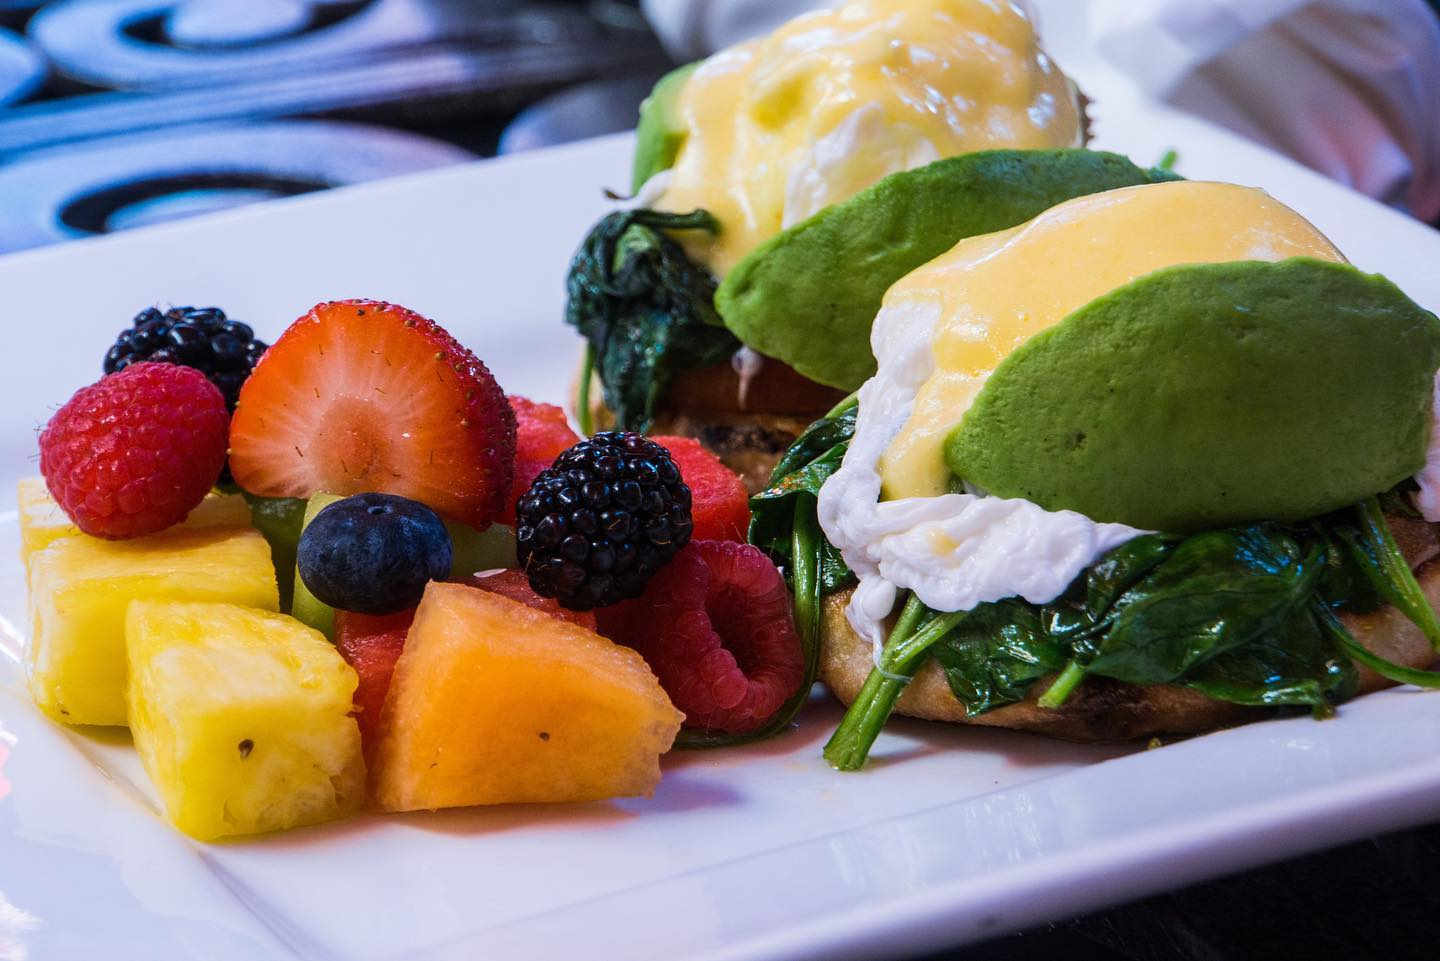 eggs benedict sandwich with a side of fresh fruit